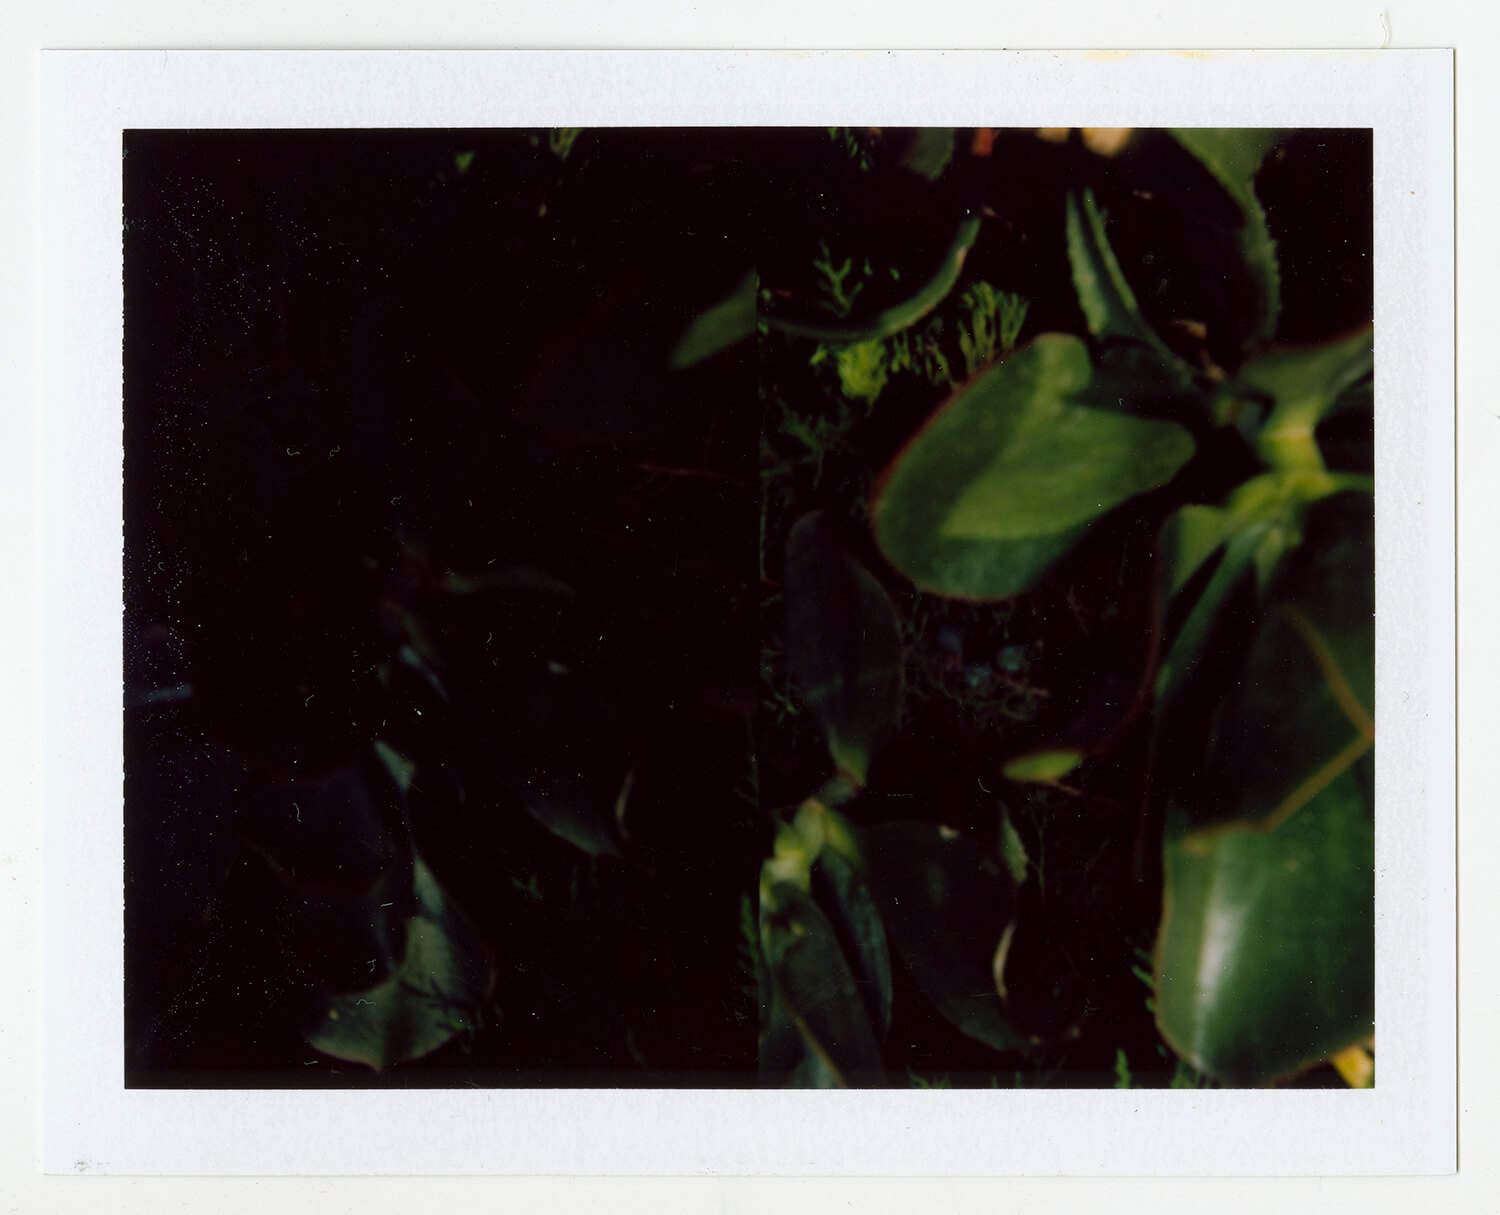 I.D.100, The Polaroid Revolutionary Workers, 2013, Polaroid Picture, 107mm x 86mm